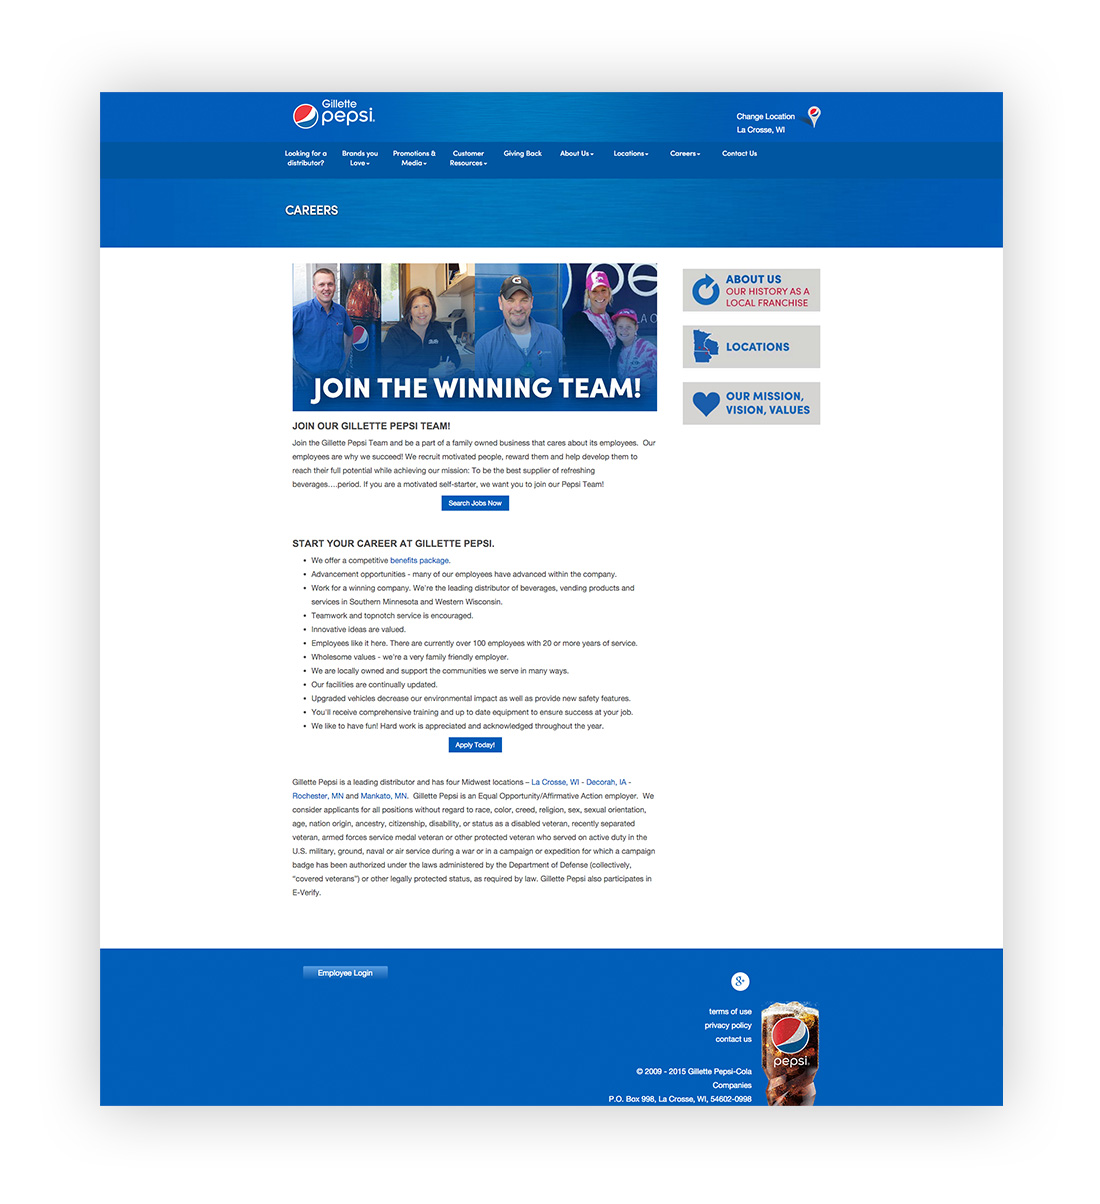 image of new landing page for employment at Gillette Pepsi.